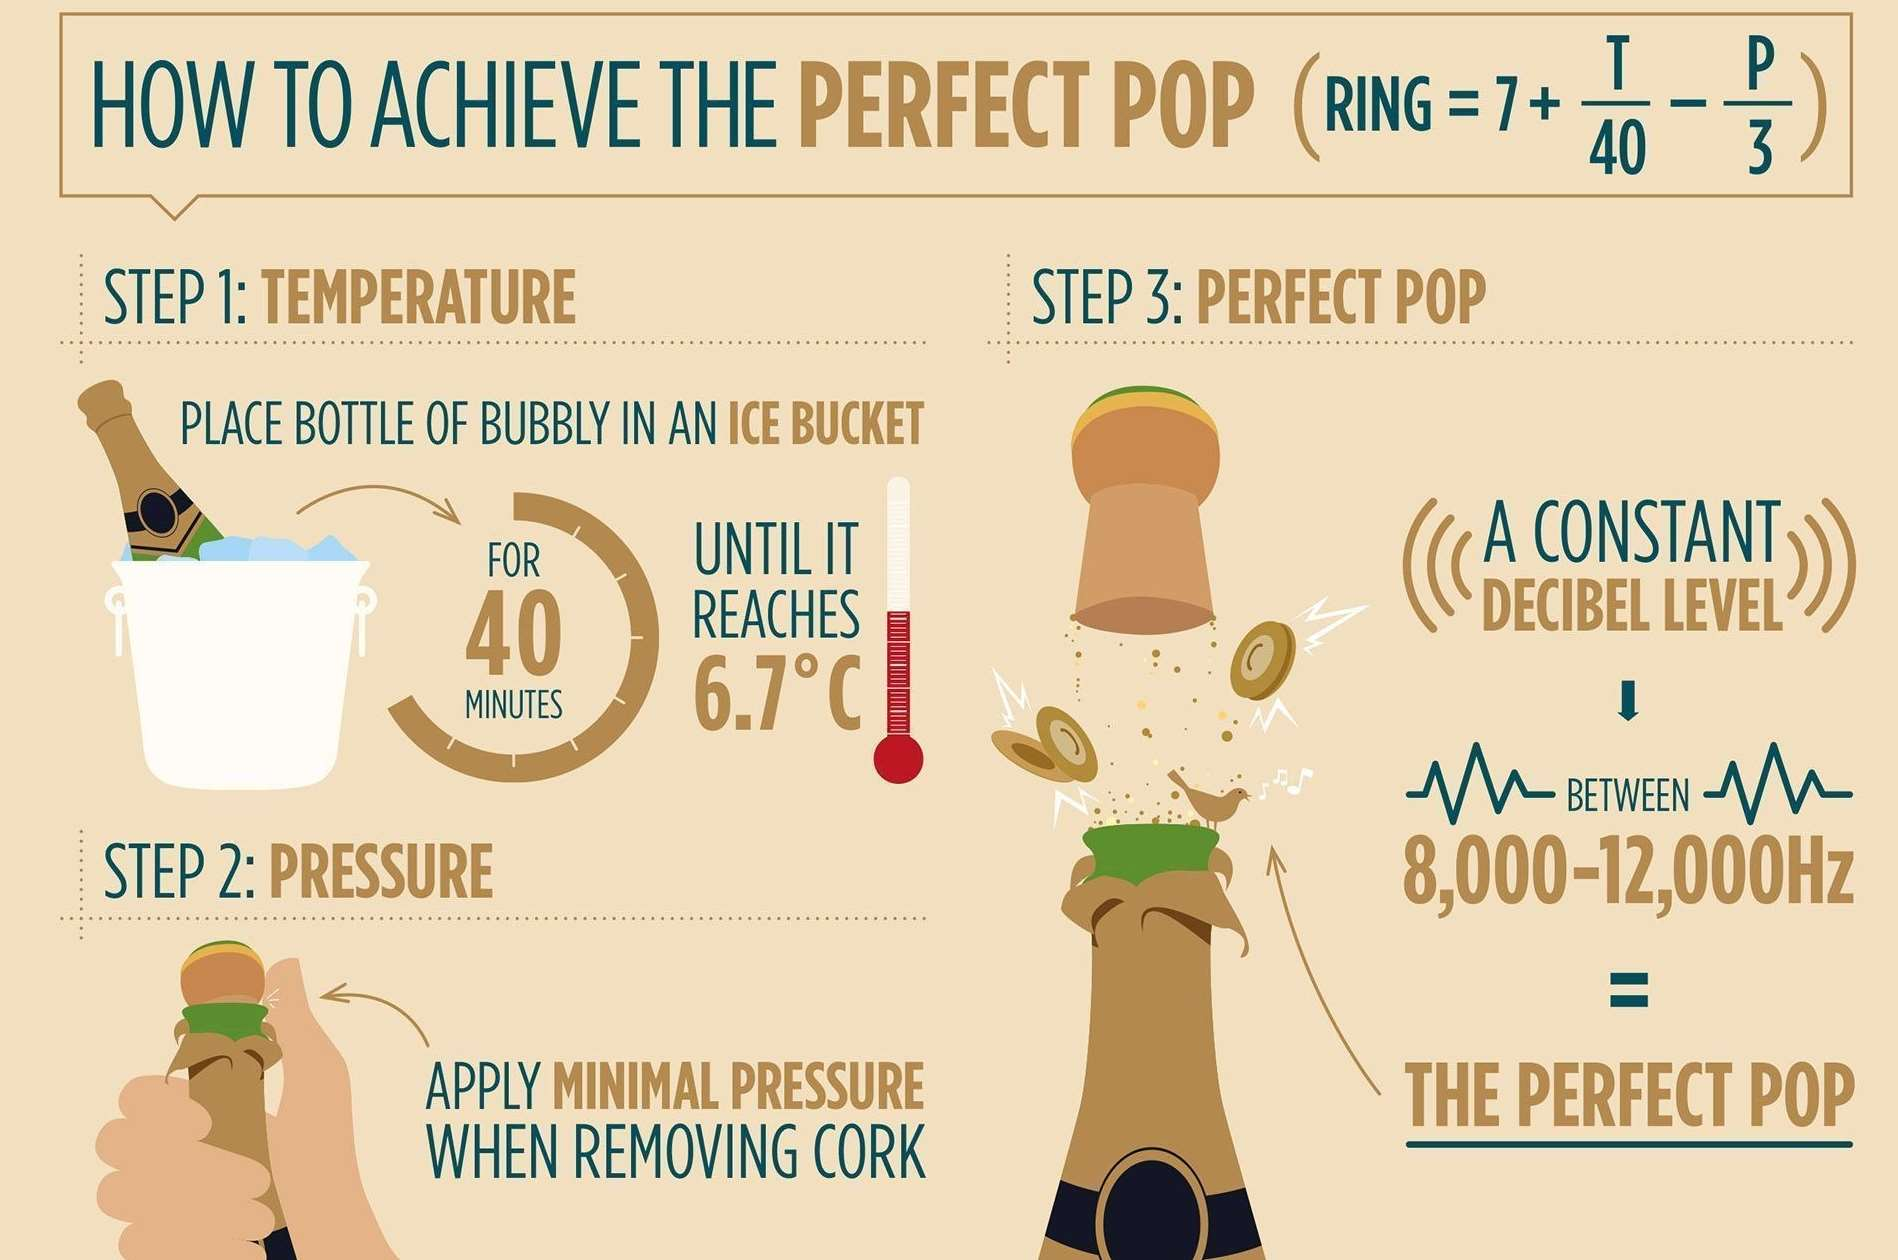 Achieve the perfect pop